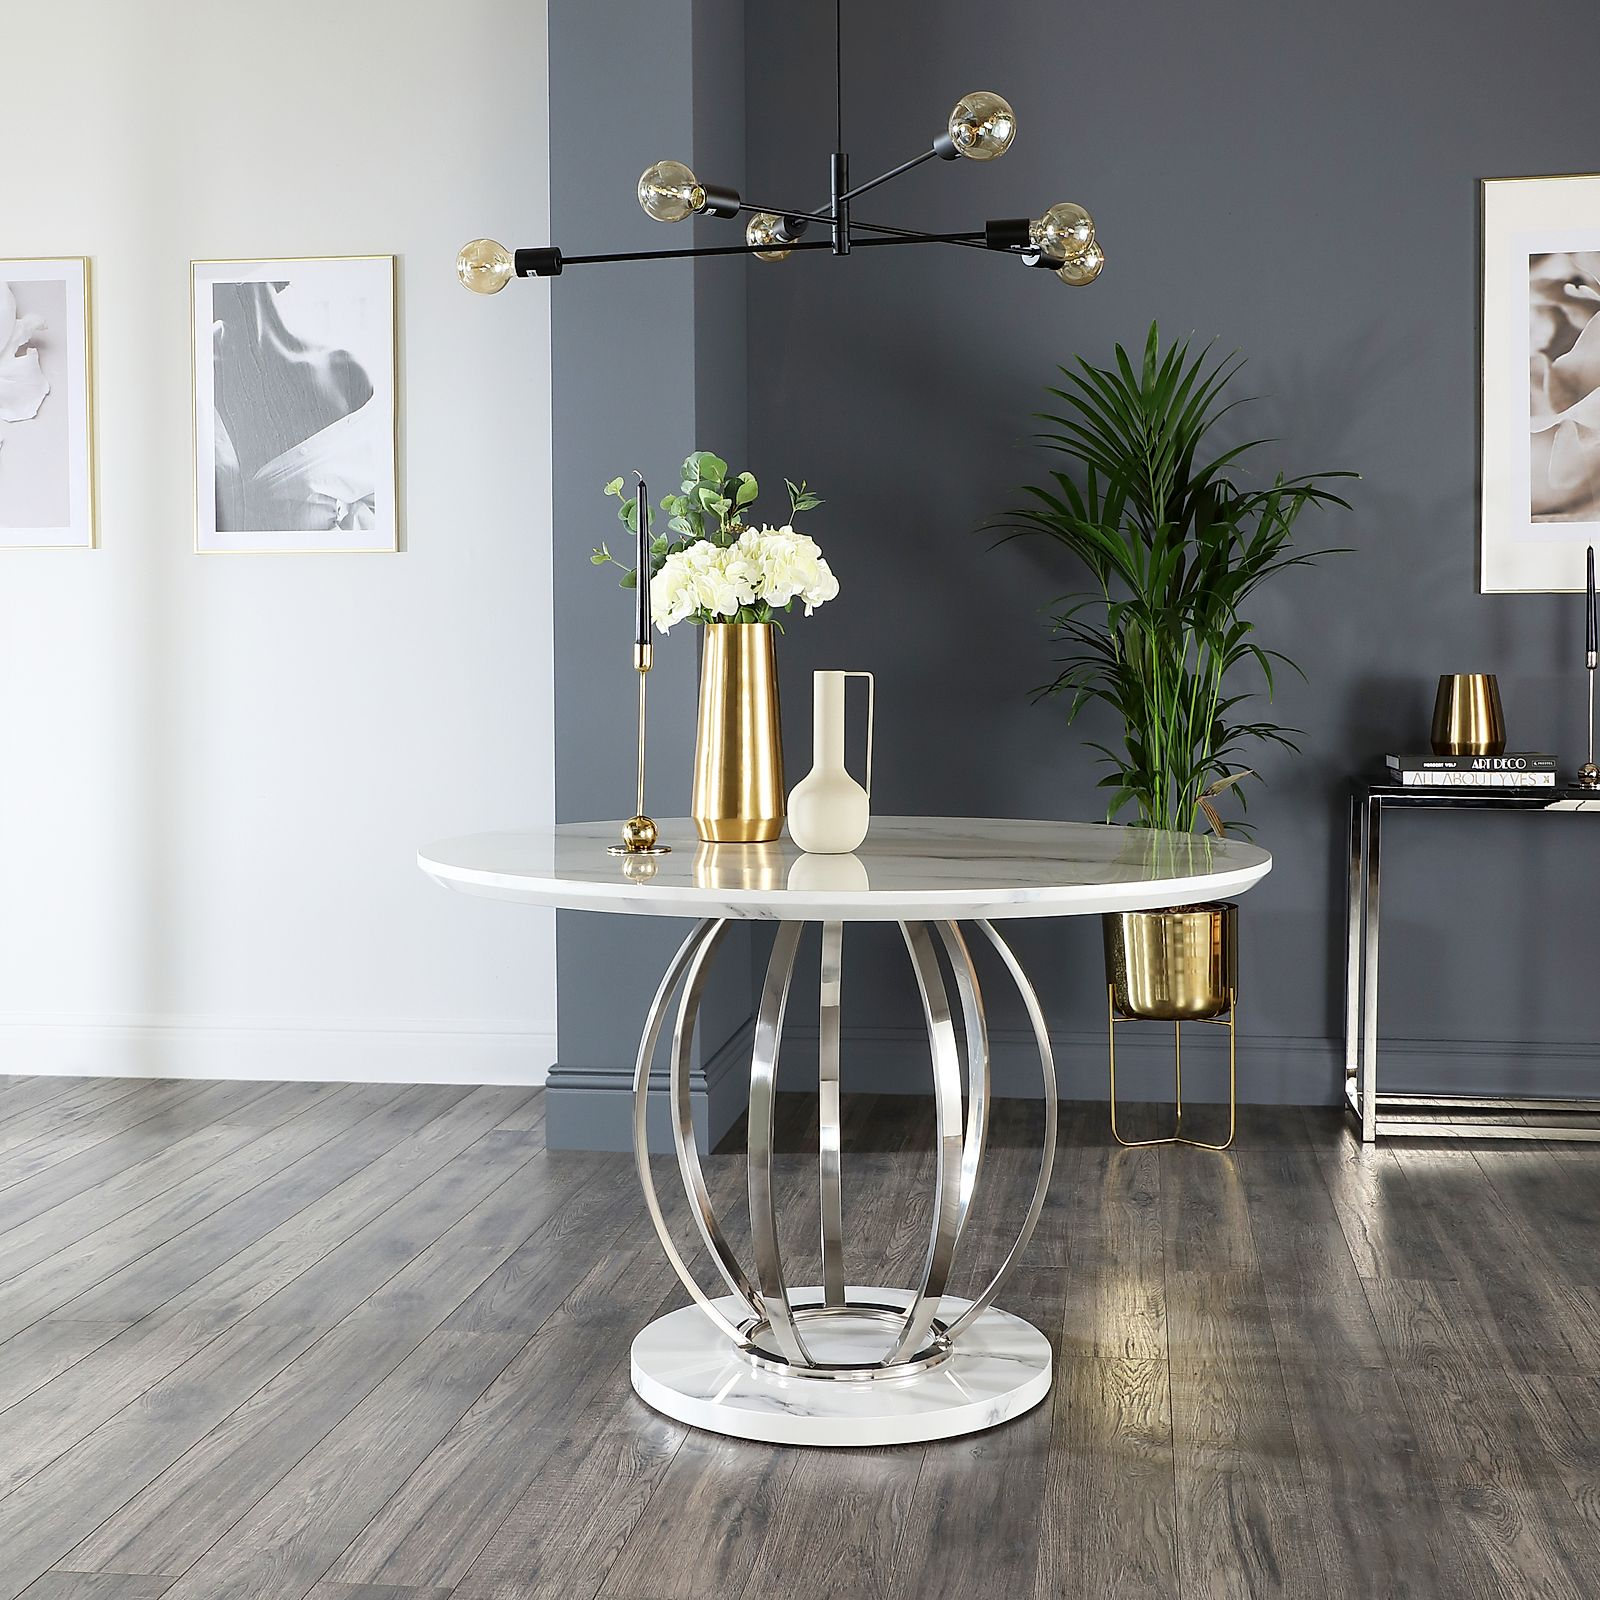 Savoy Round White Marble And Chrome Dining Table